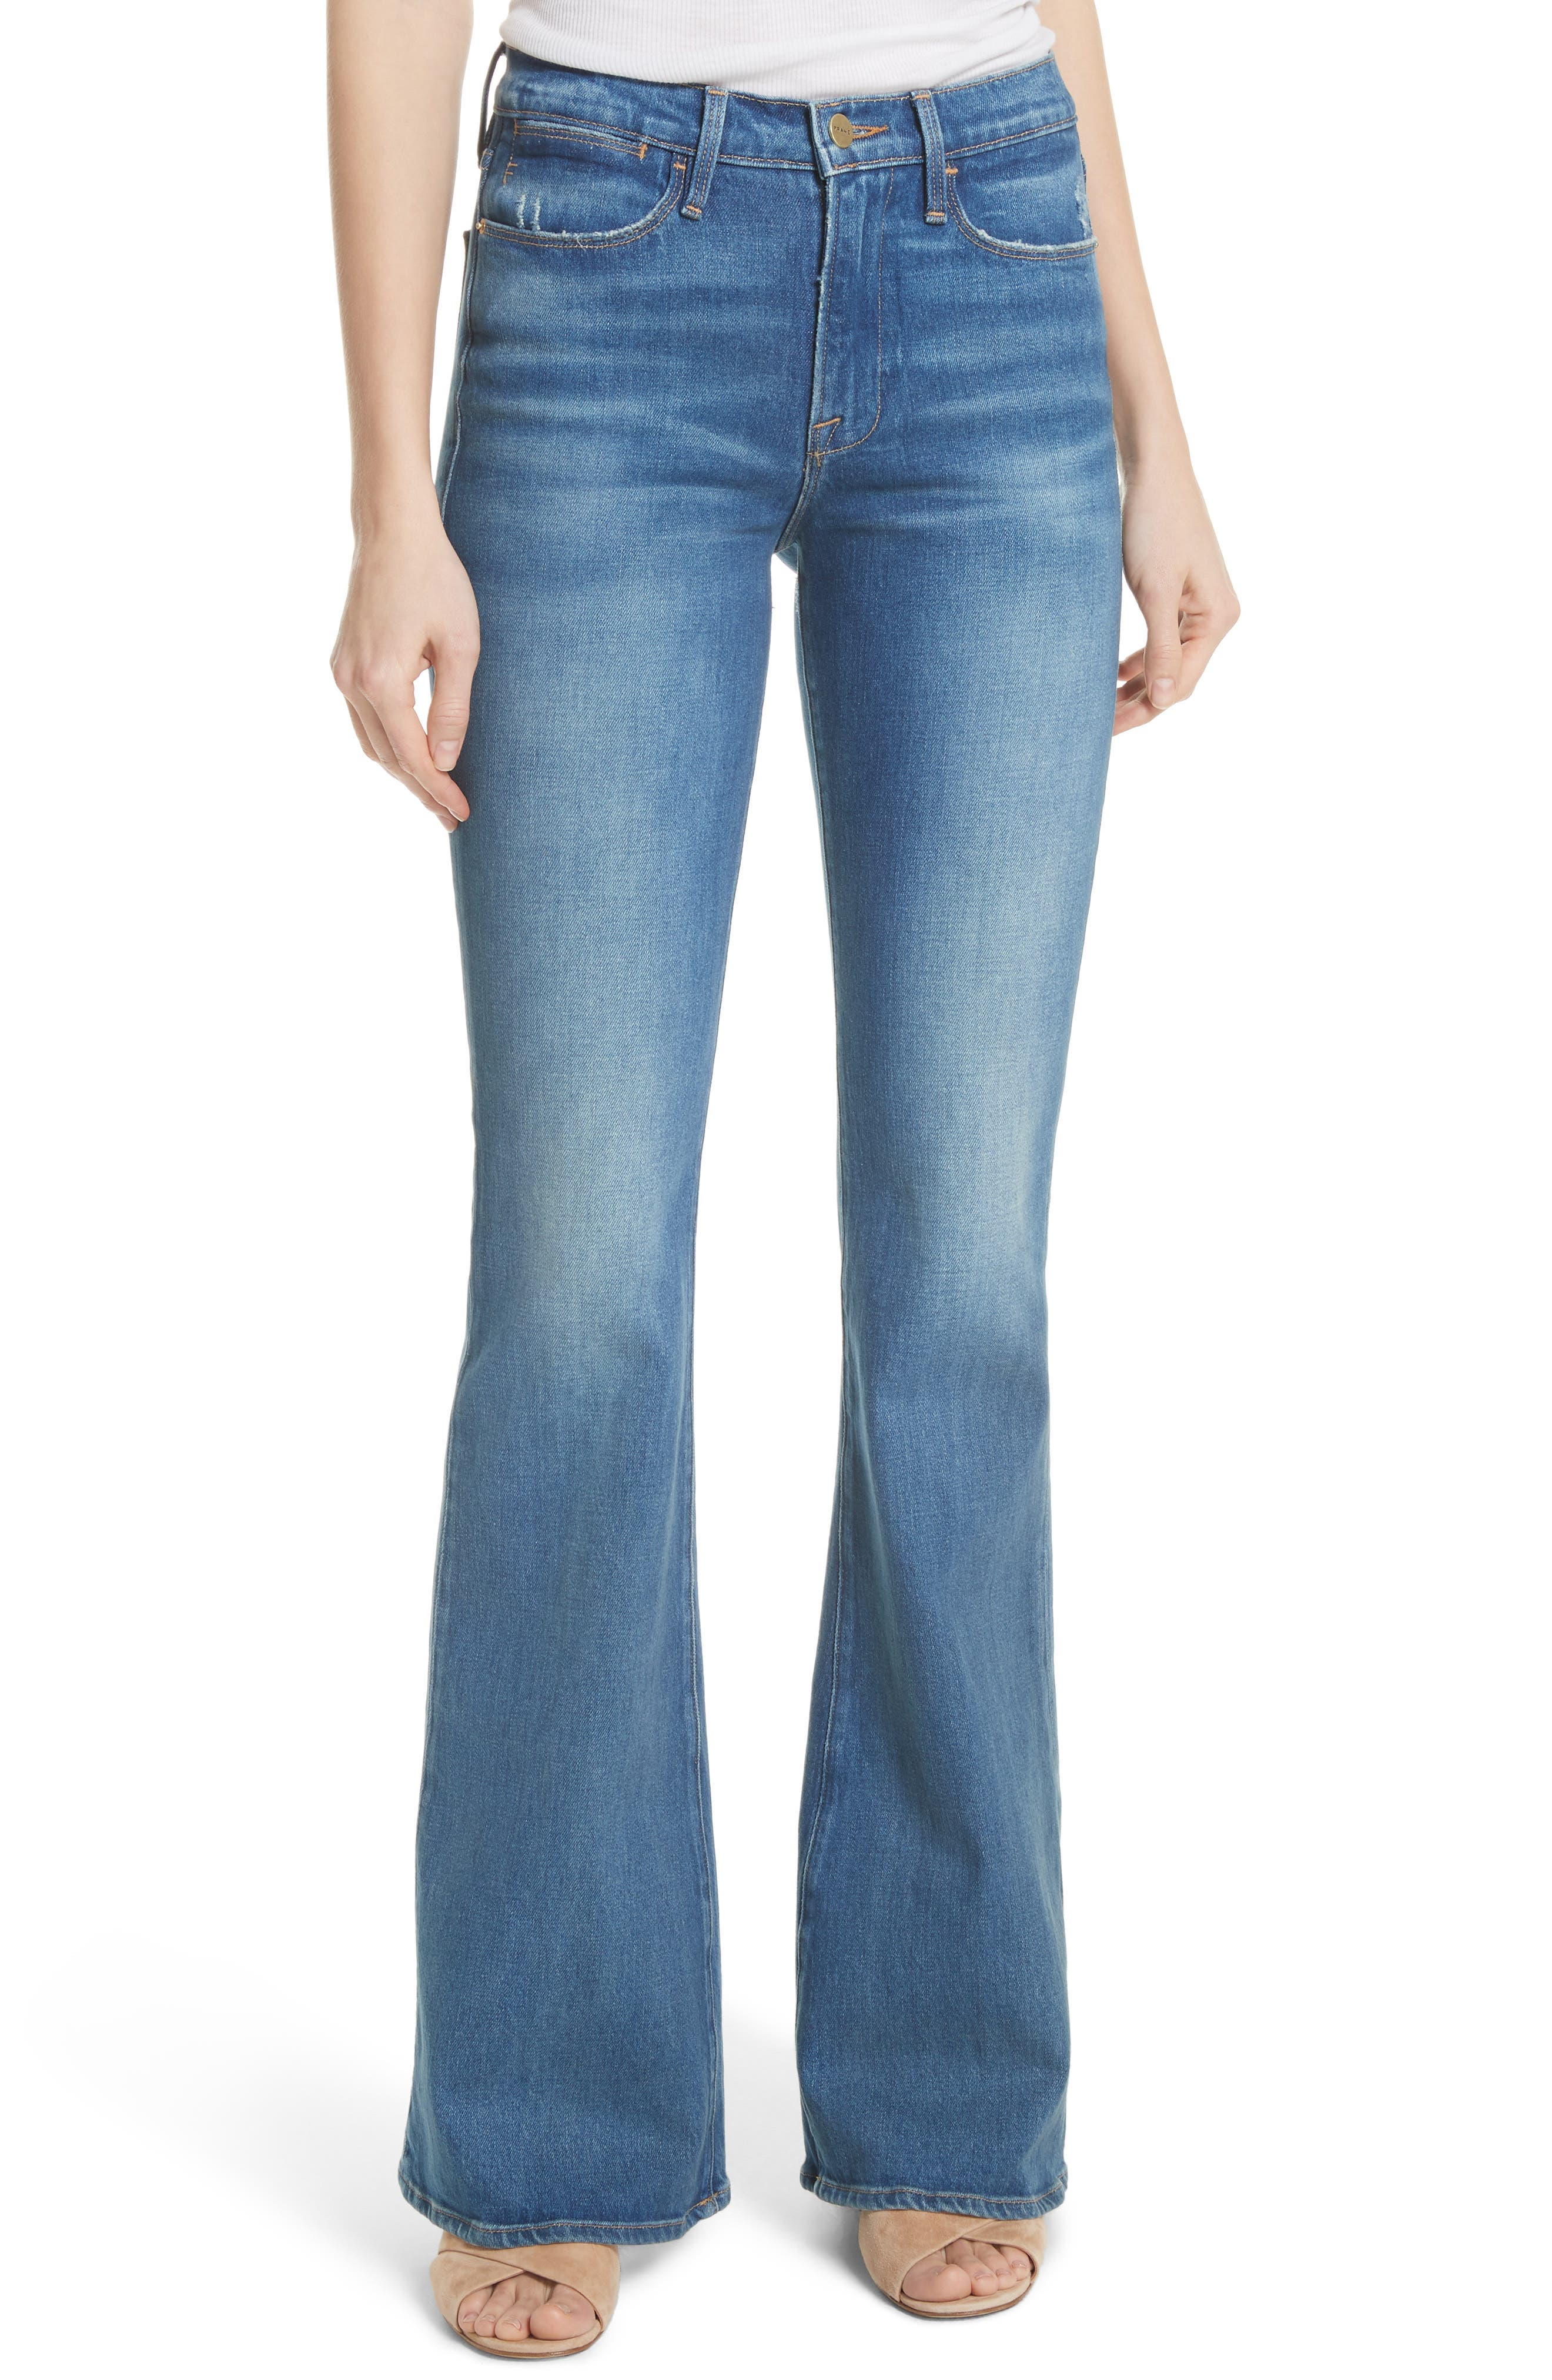 Le High Flare Jeans,                         Main,                         color, Clapps